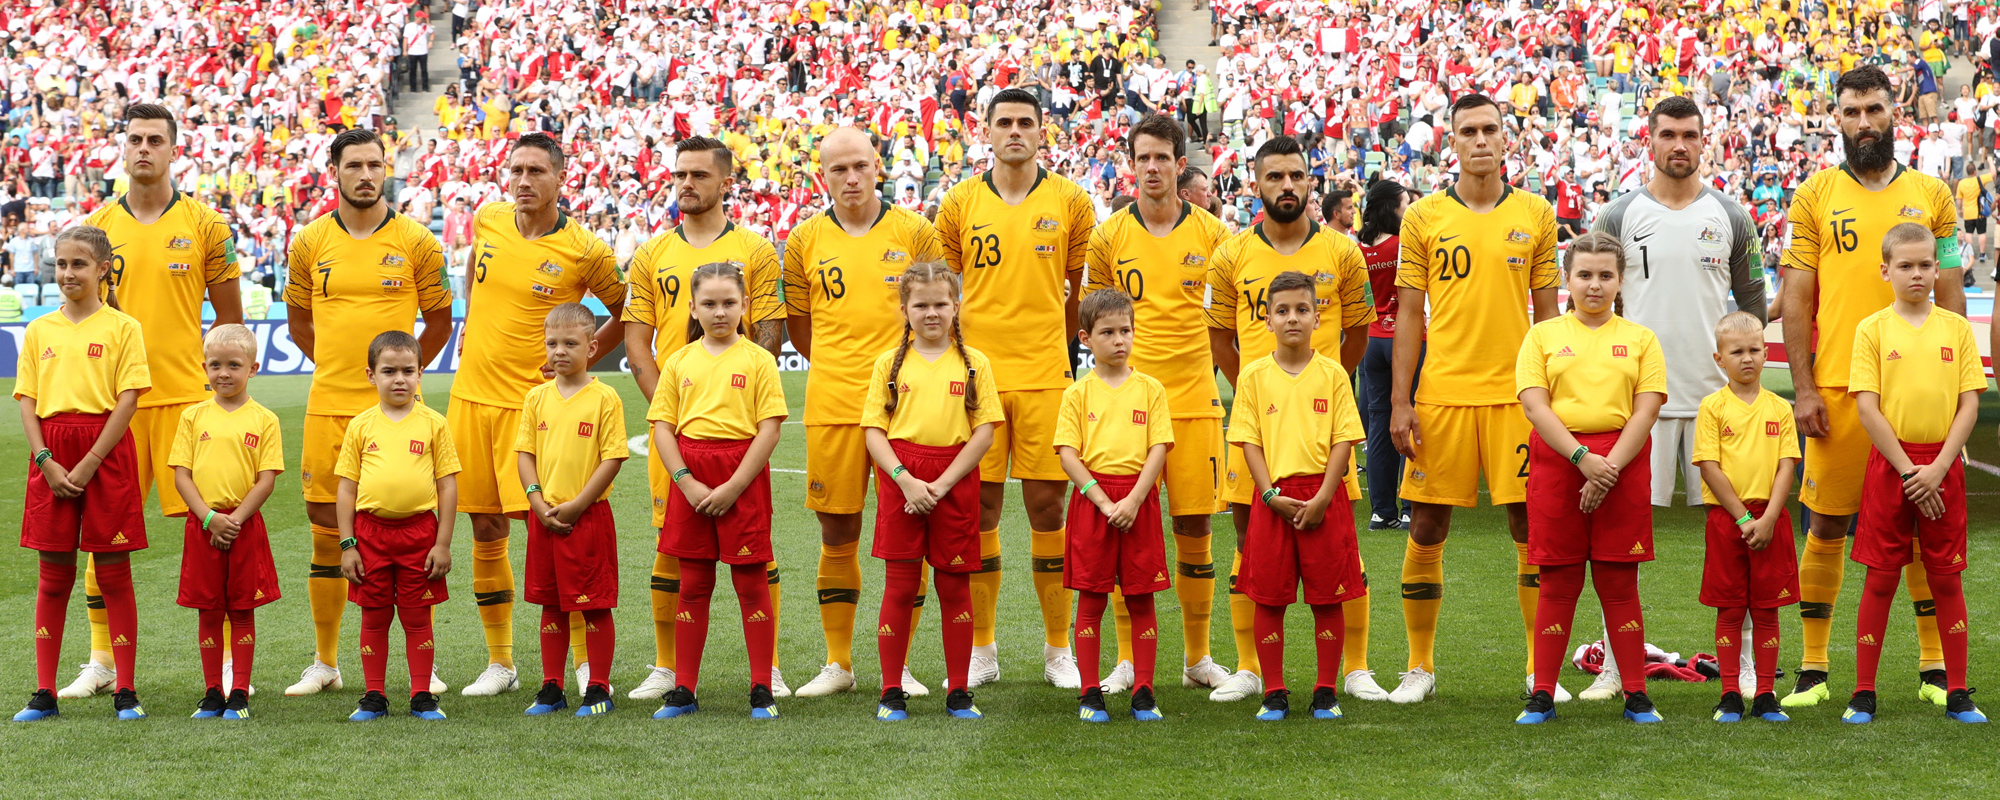 a906c872c Caltex Socceroos to play Korea Republic in Arnold s first home game ...